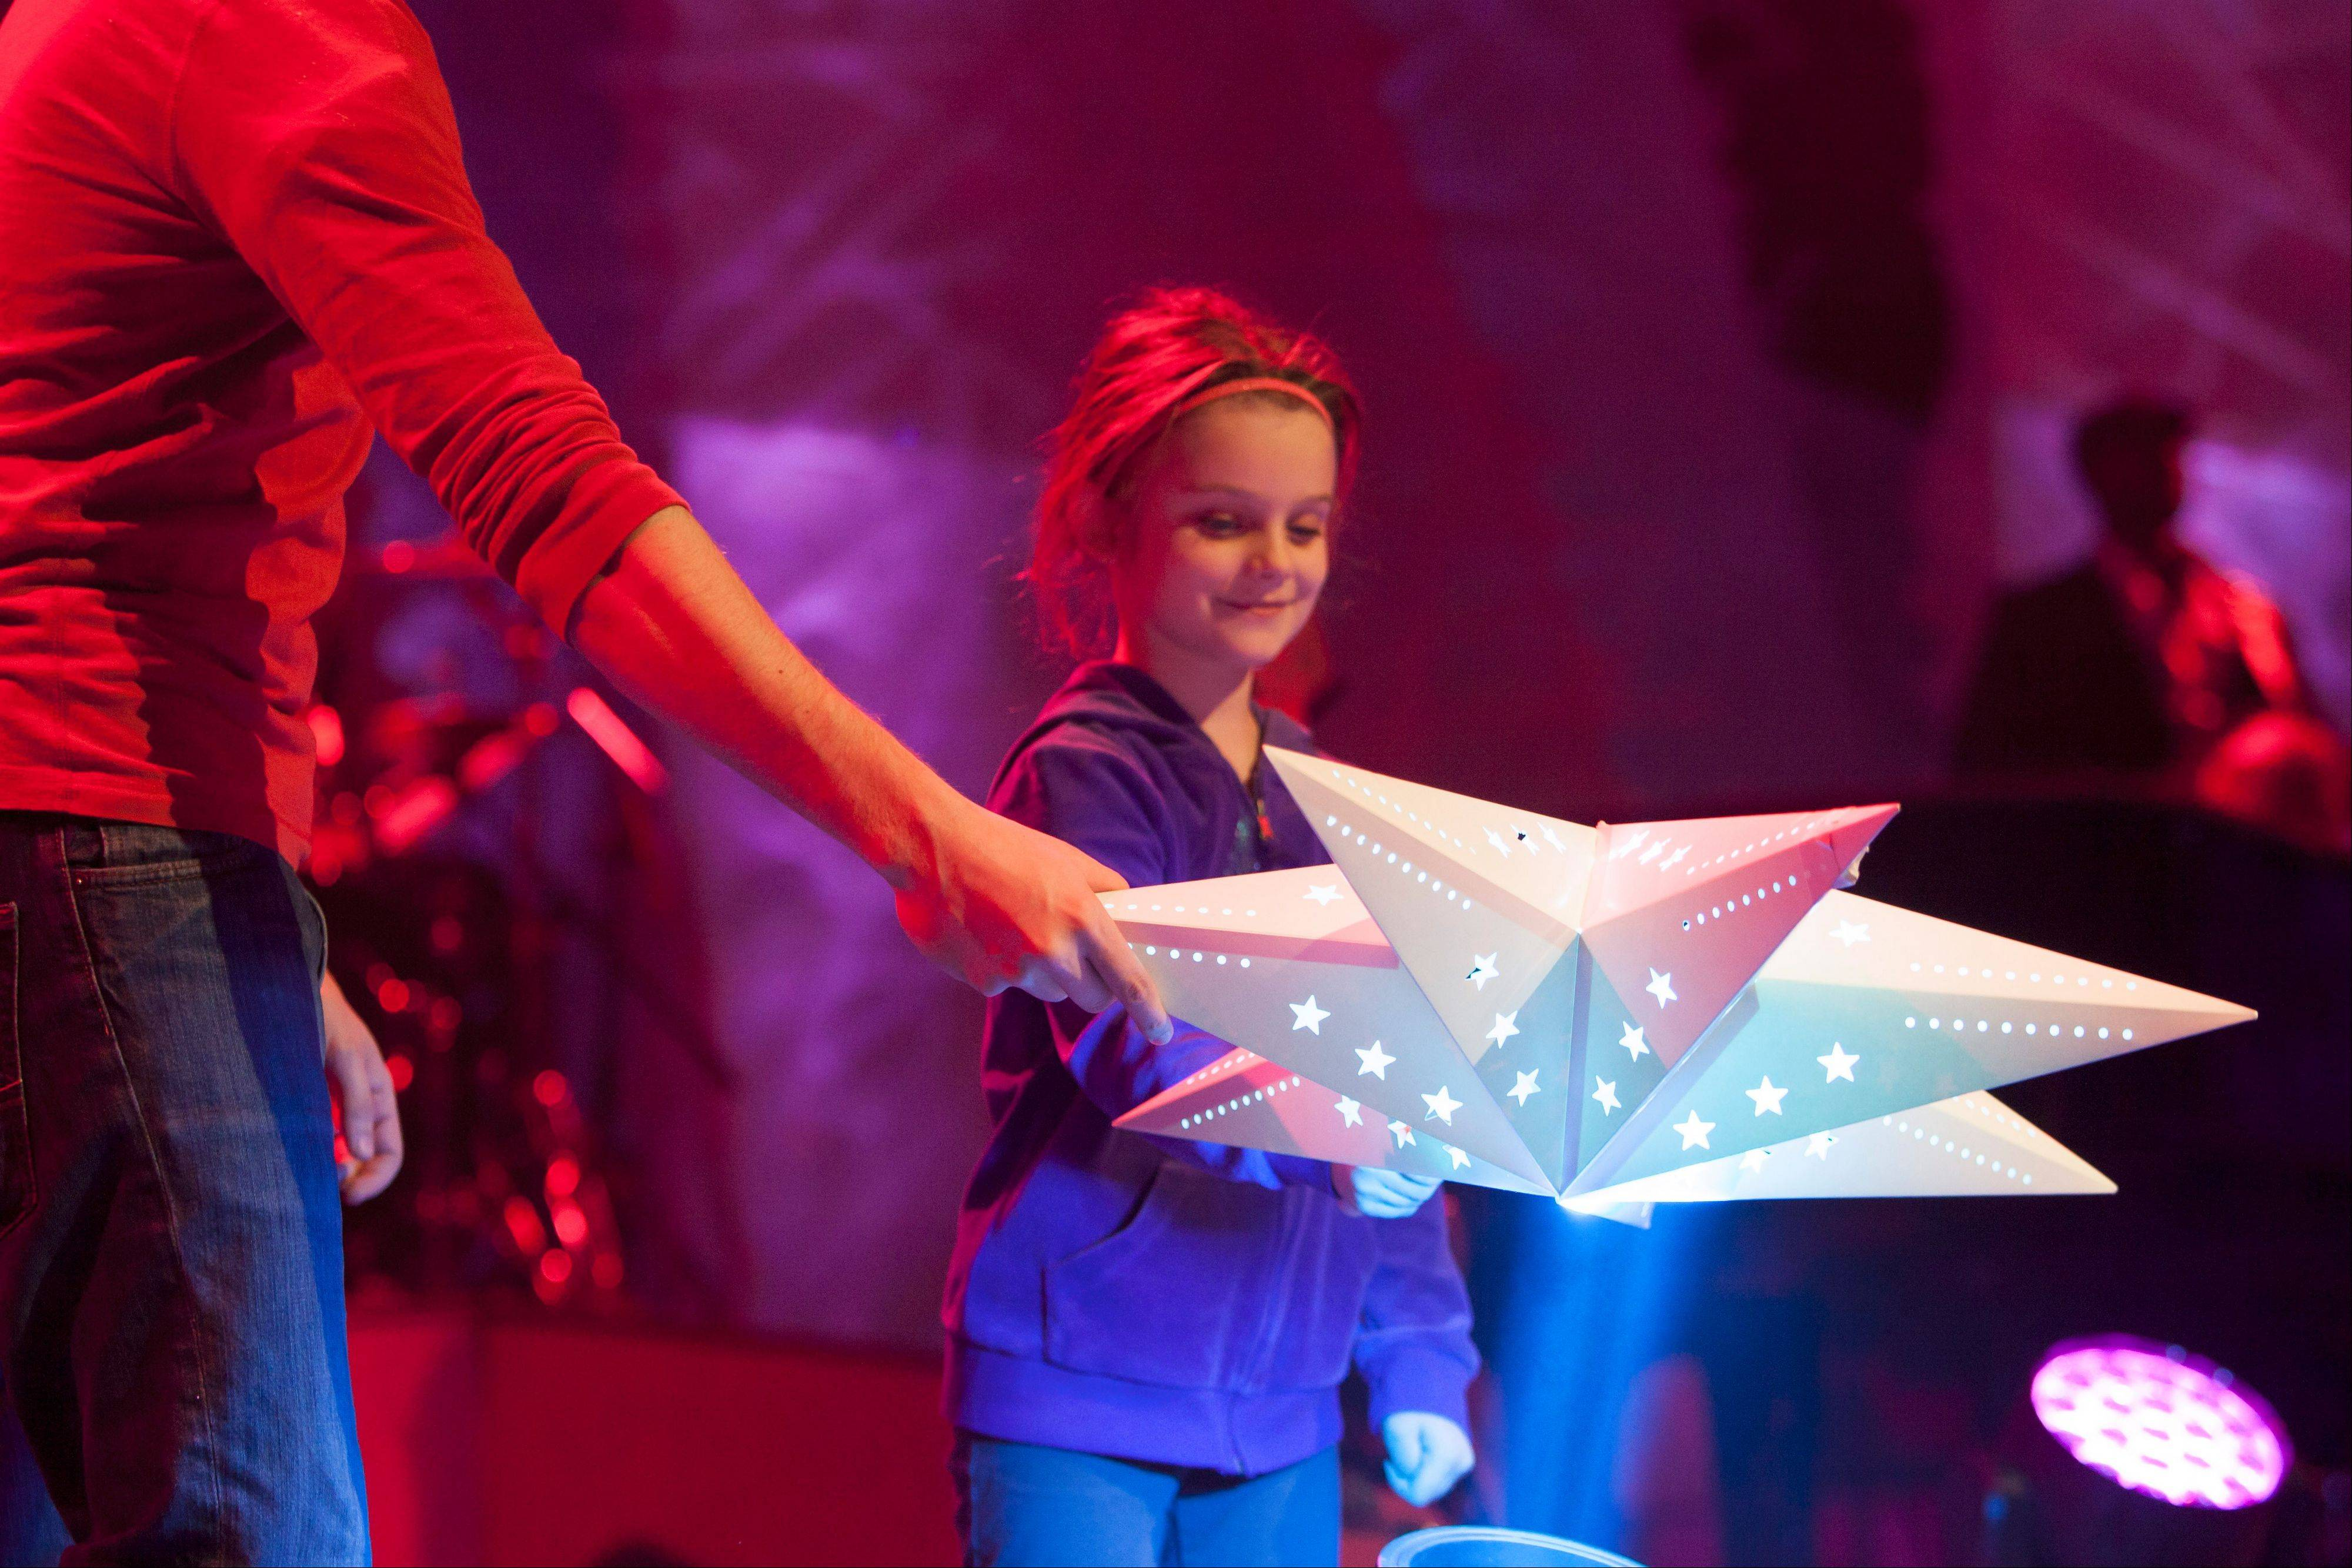 Cameryn Johnson, 5, will be among the many performers taking part in Christmas services at Willow Creek Community Church in South Barrington. More than 75,000 worshippers are expected to attend.